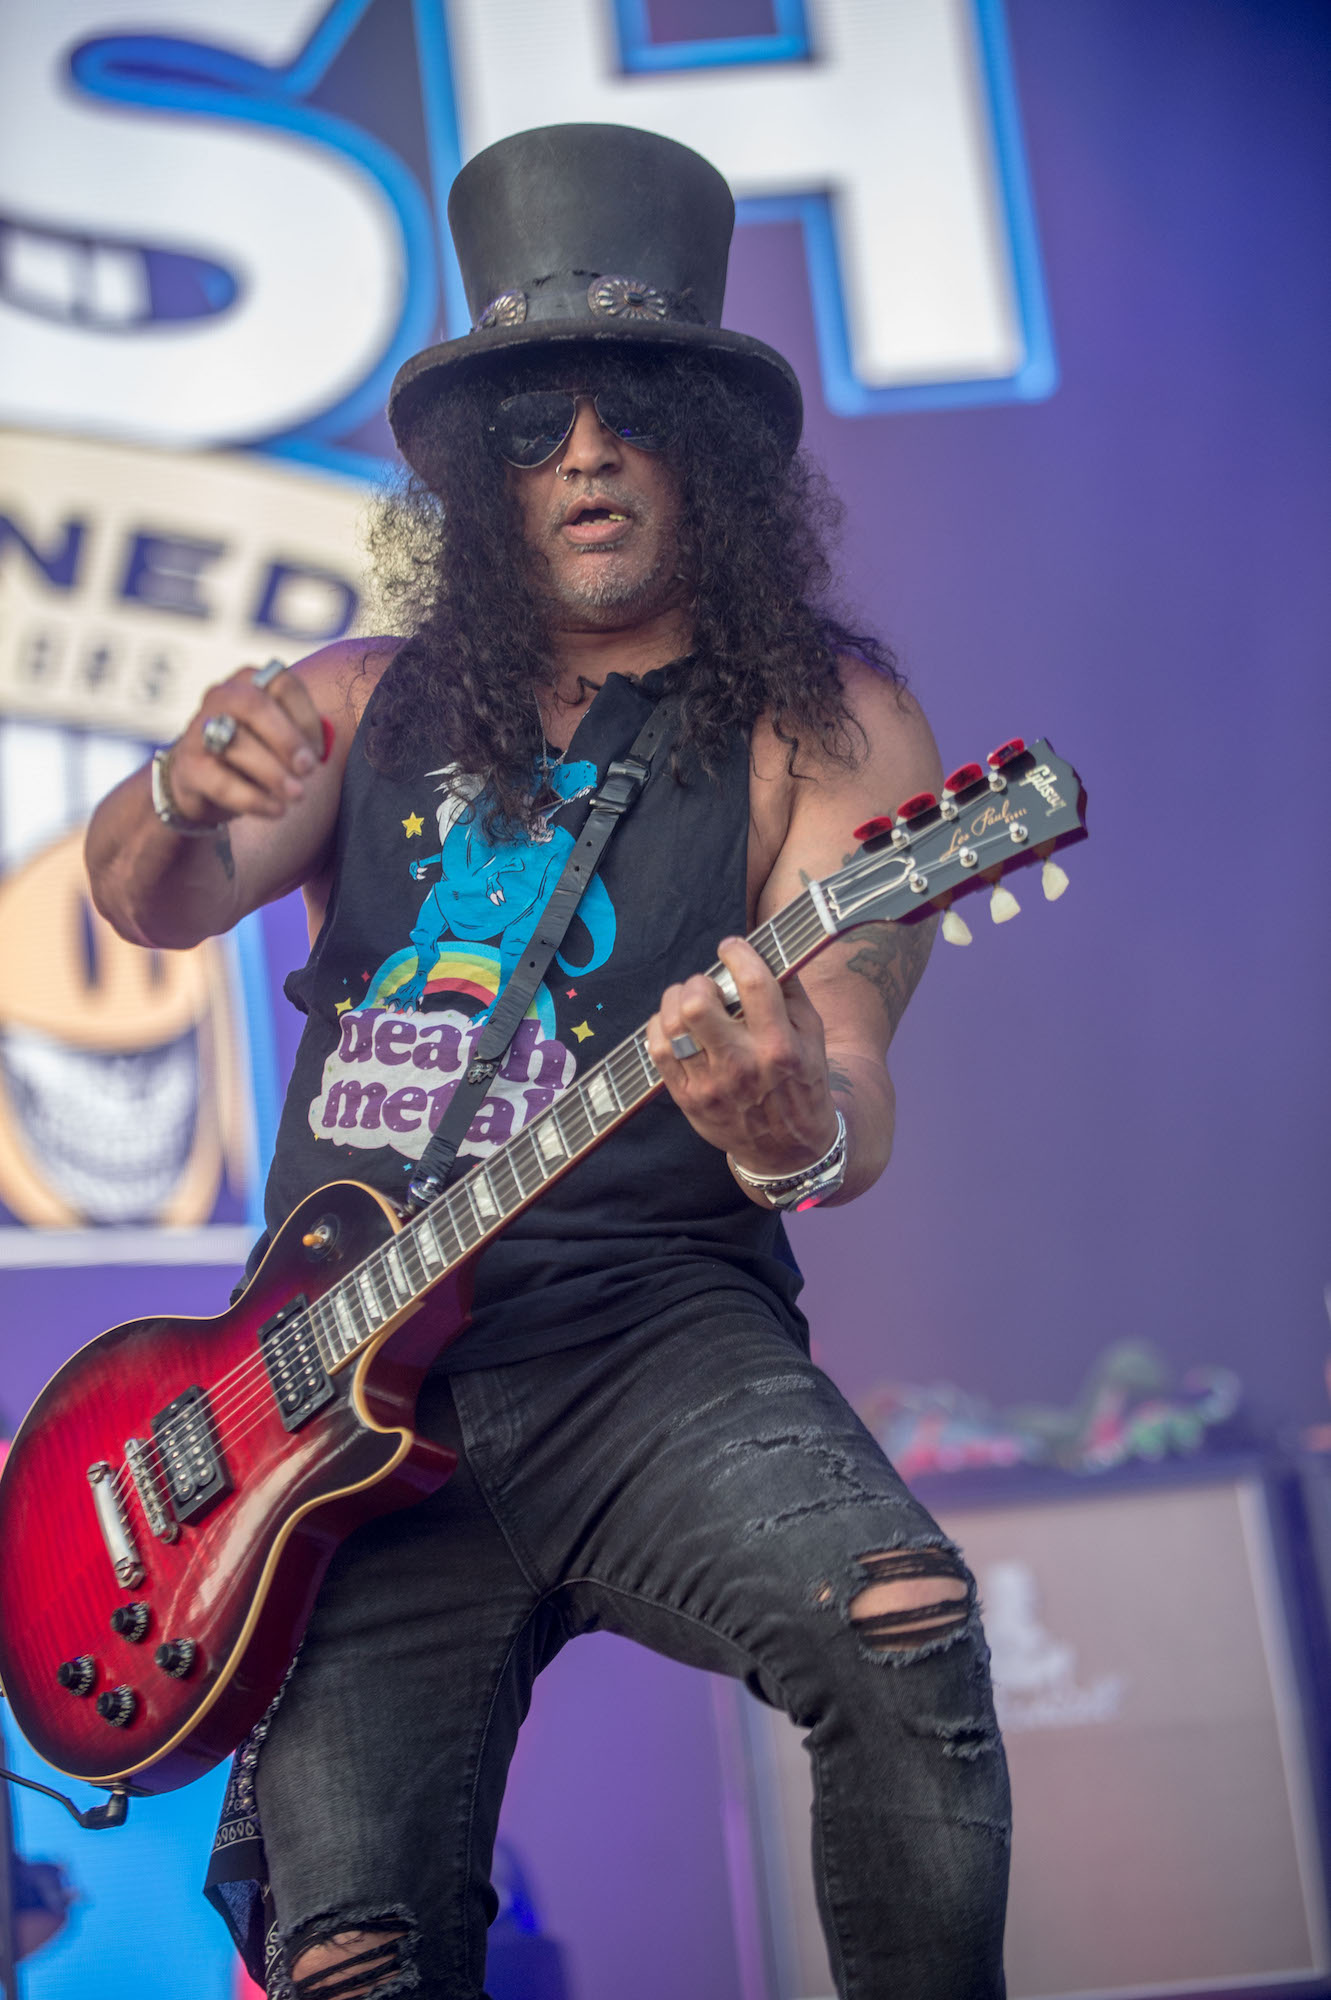 SLASH Featuring Myles Kennedy And The Conspirators Live at Lollapalooza [GALLERY] 12